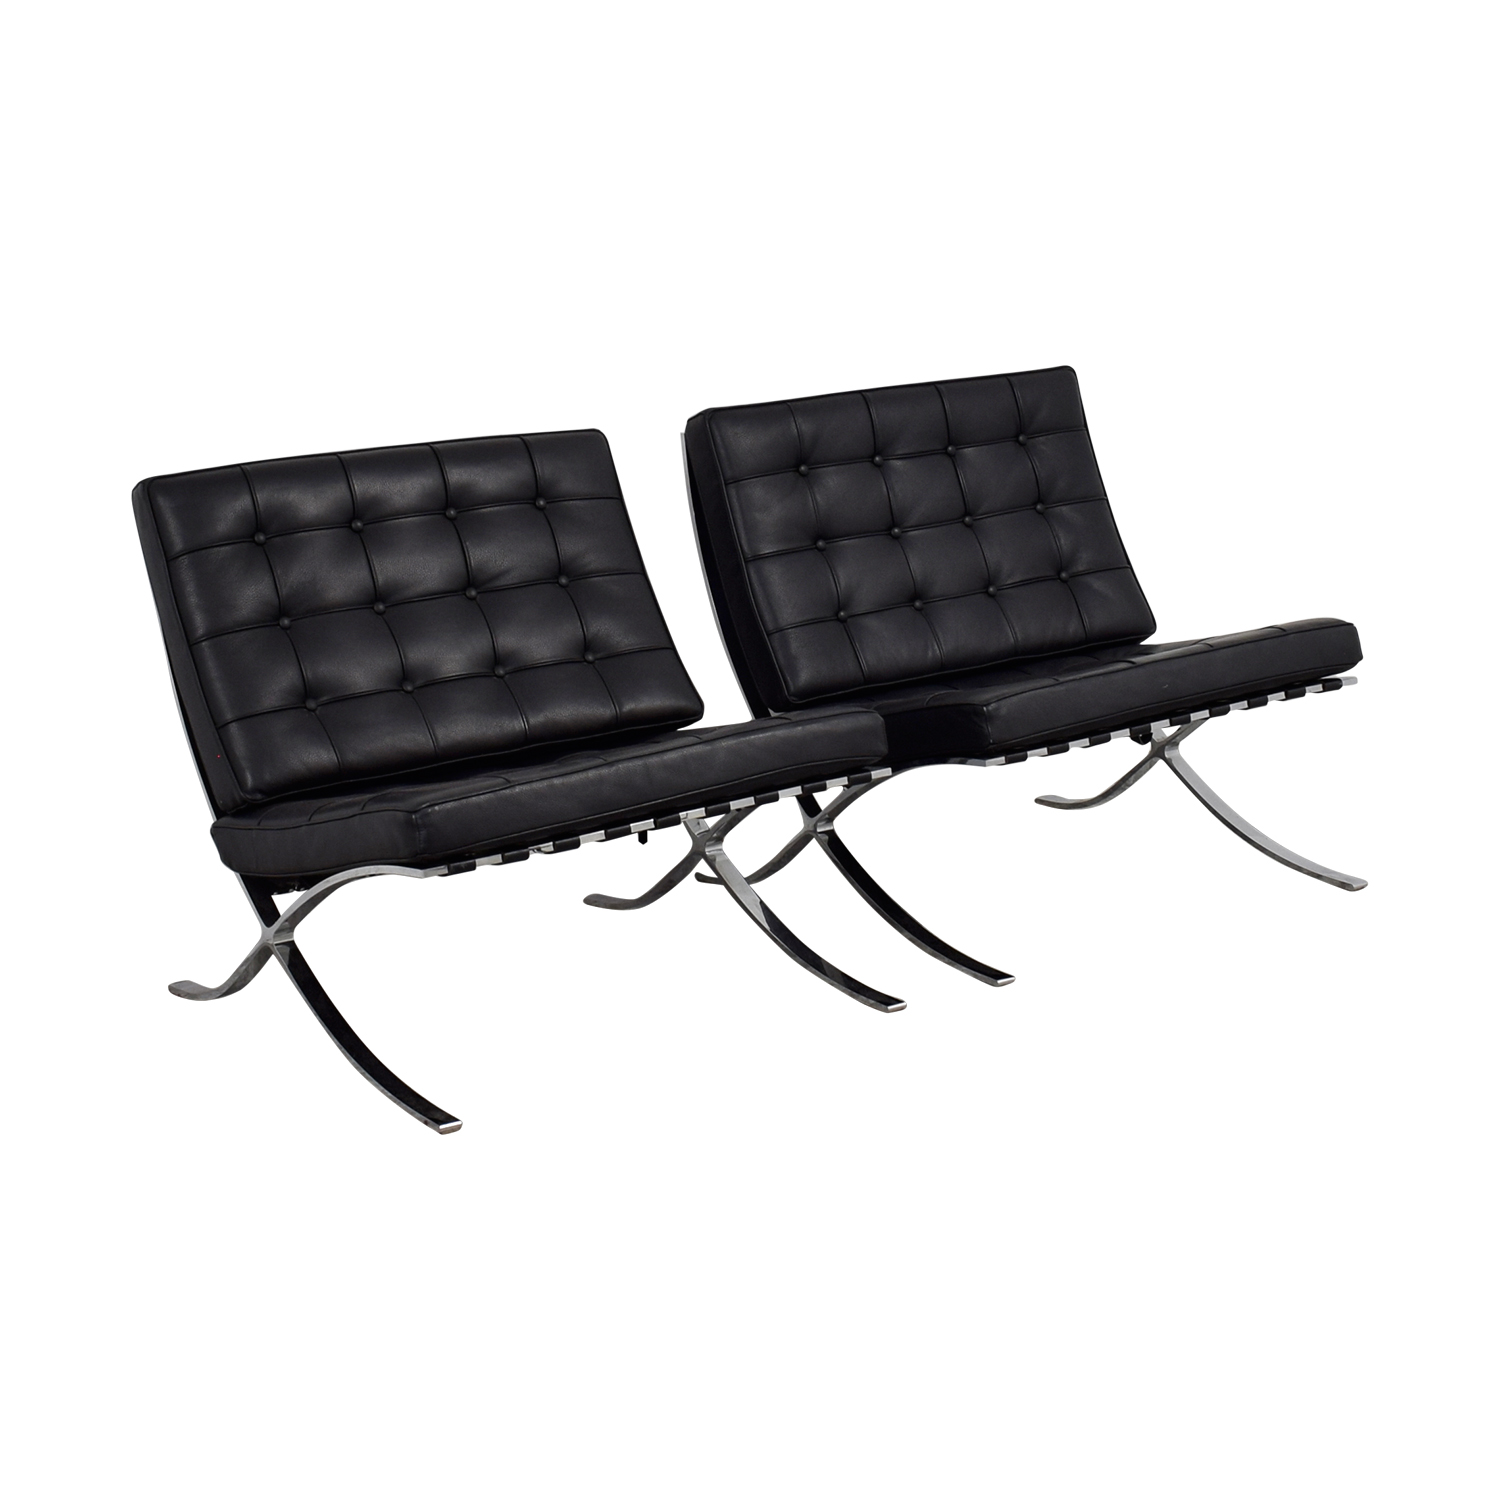 Black and Chrome Tufted Barcelona Style Accent Chairs used